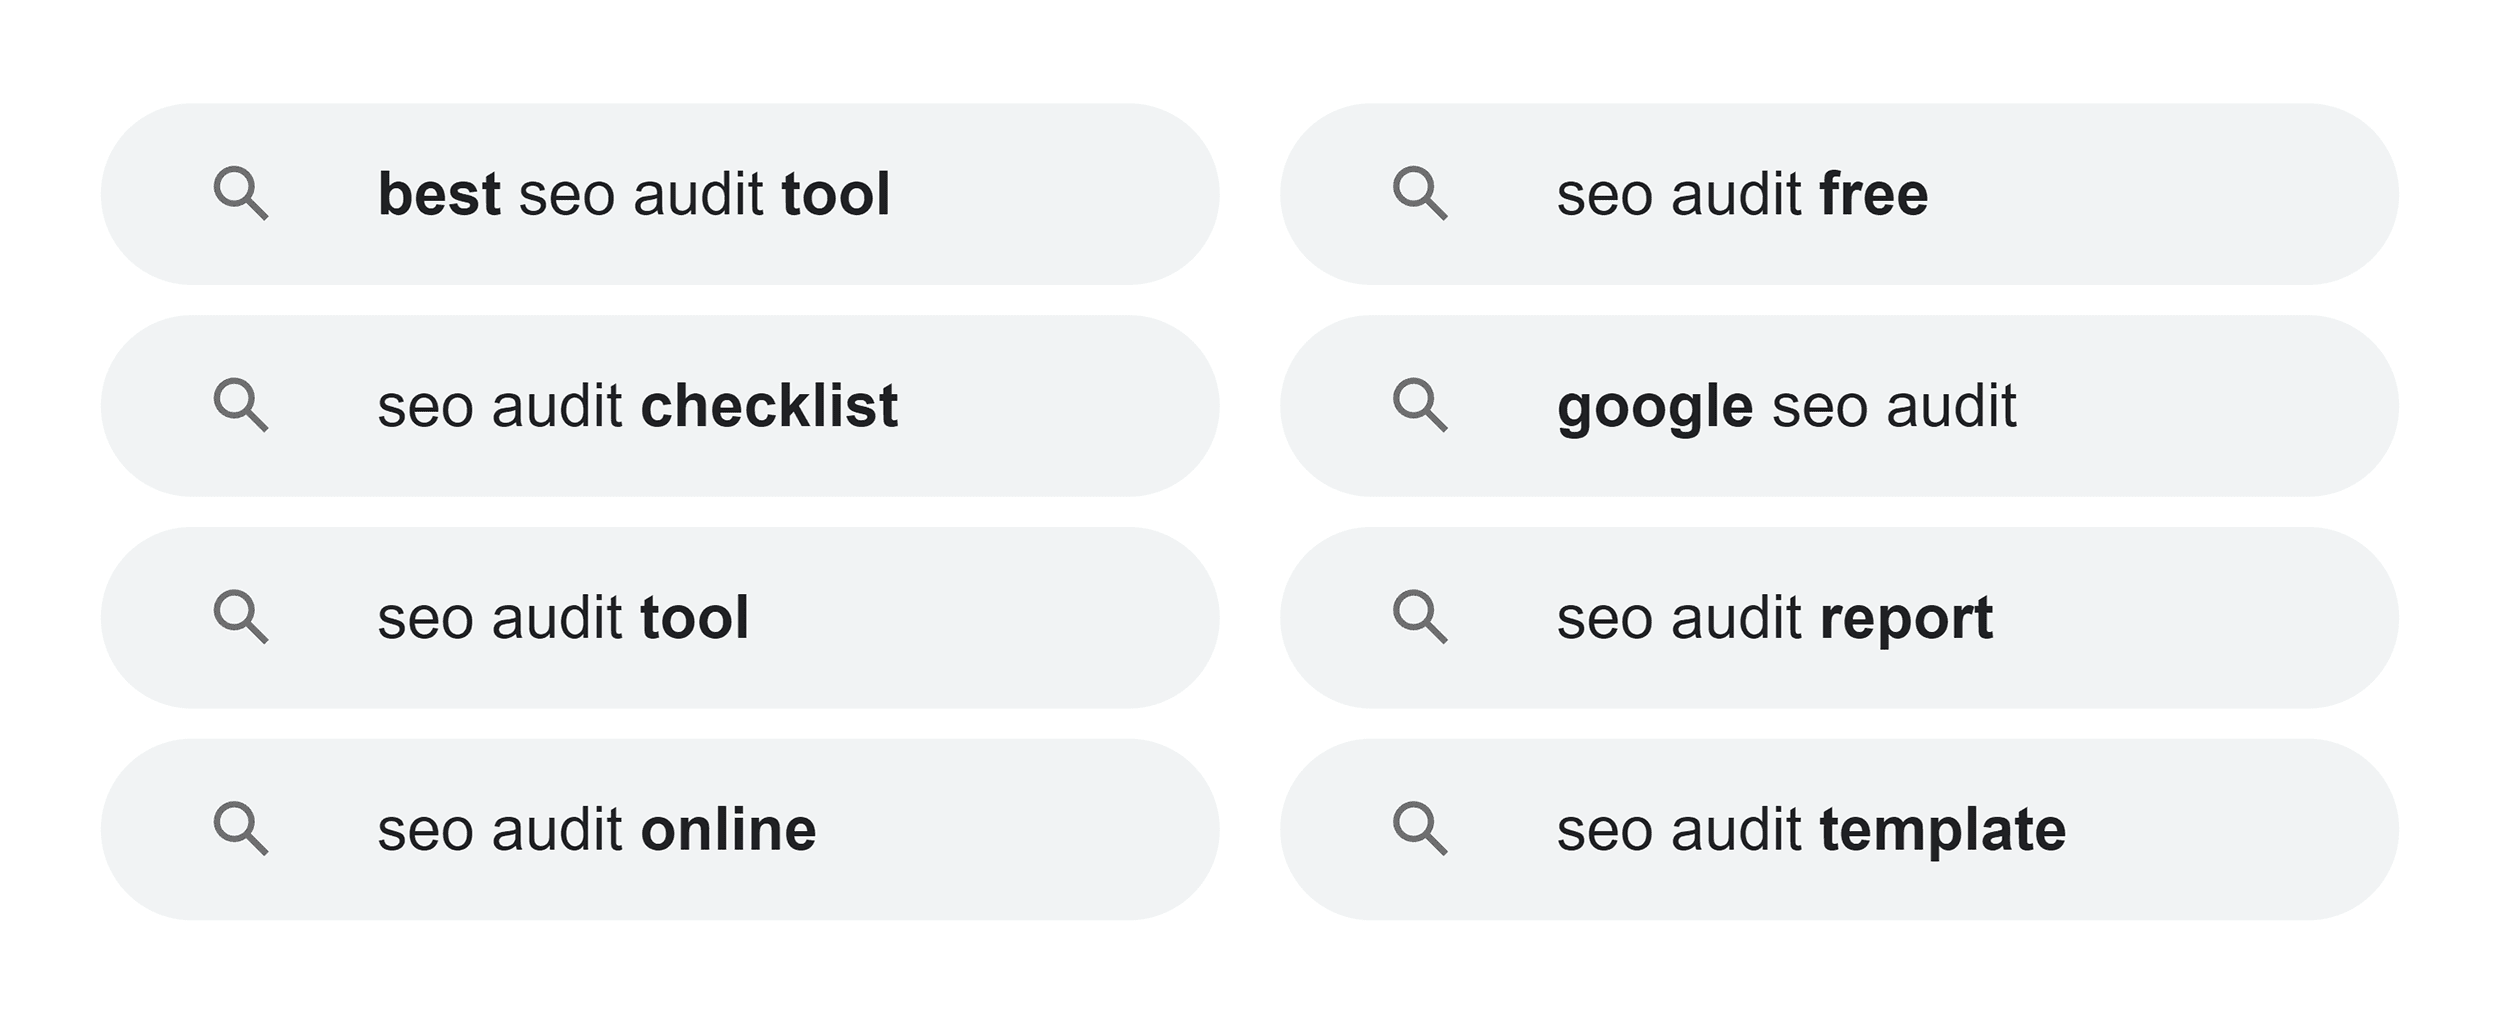 SEO audit – Searches related to